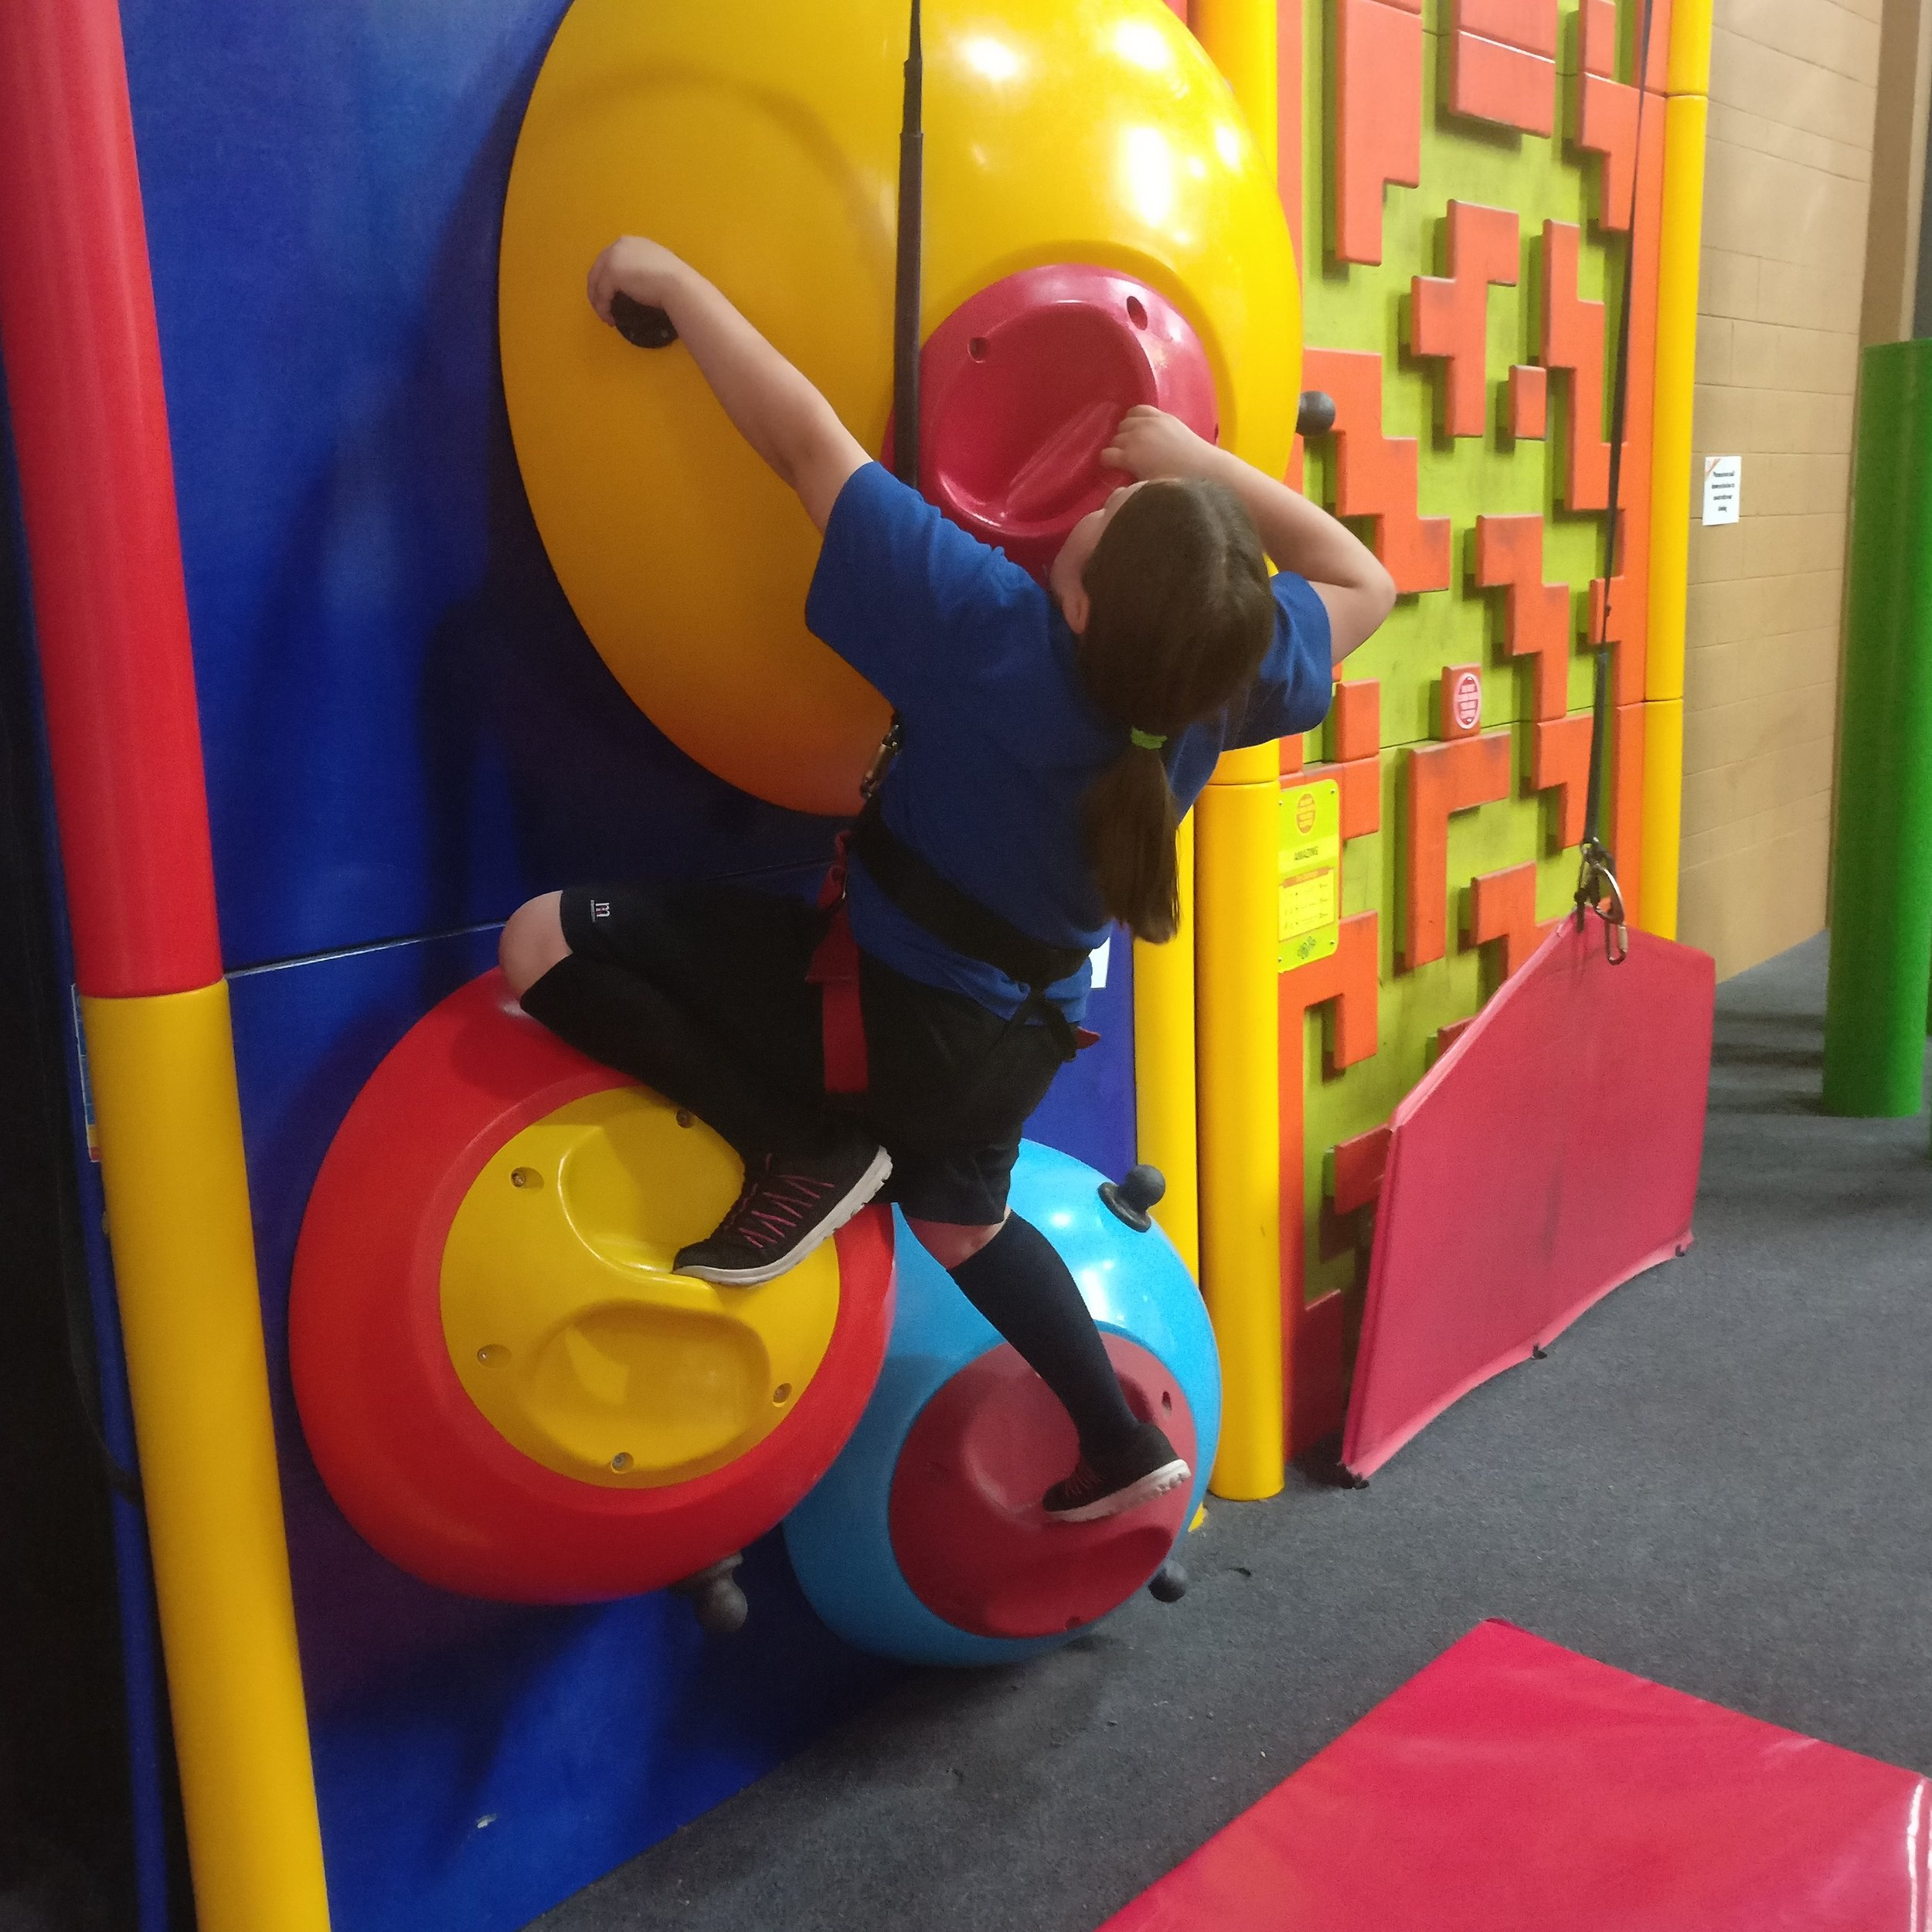 No climbing experience needed just clip and climb at the YMCA Adventure Centre - 📷 @dre322